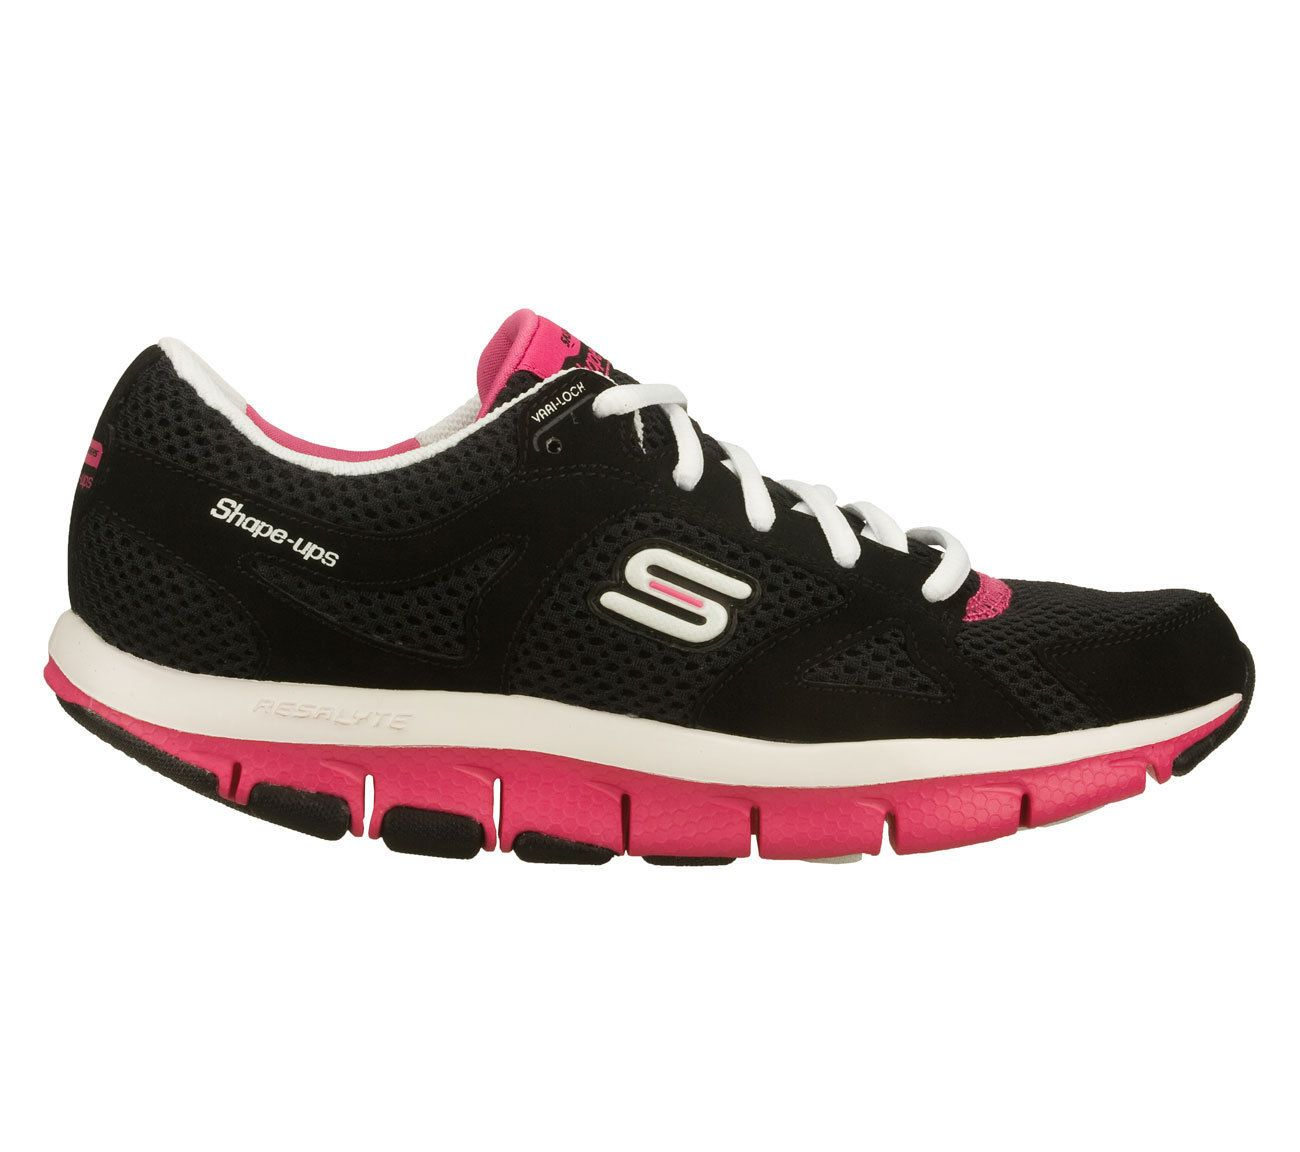 7906fd44c03 Buy sketcher shape up shoes > OFF63% Discounted